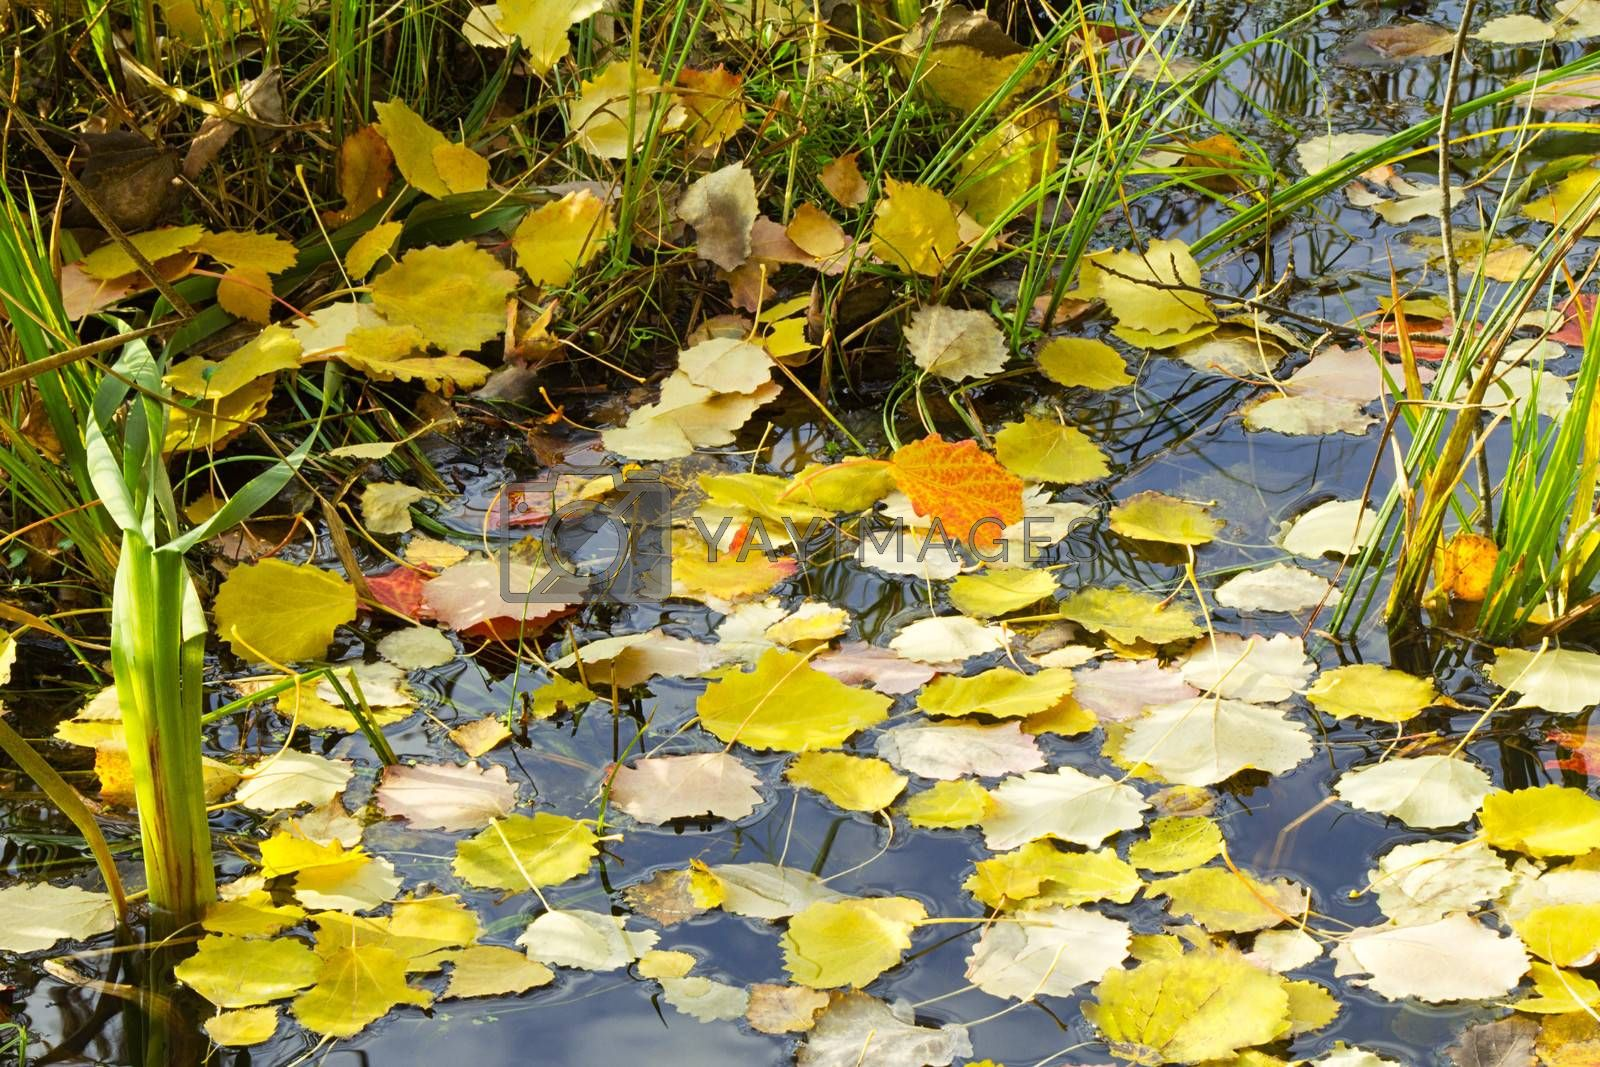 Autumn leaves, fallen from the trees on the shore of the lake lie on the surface of the water.